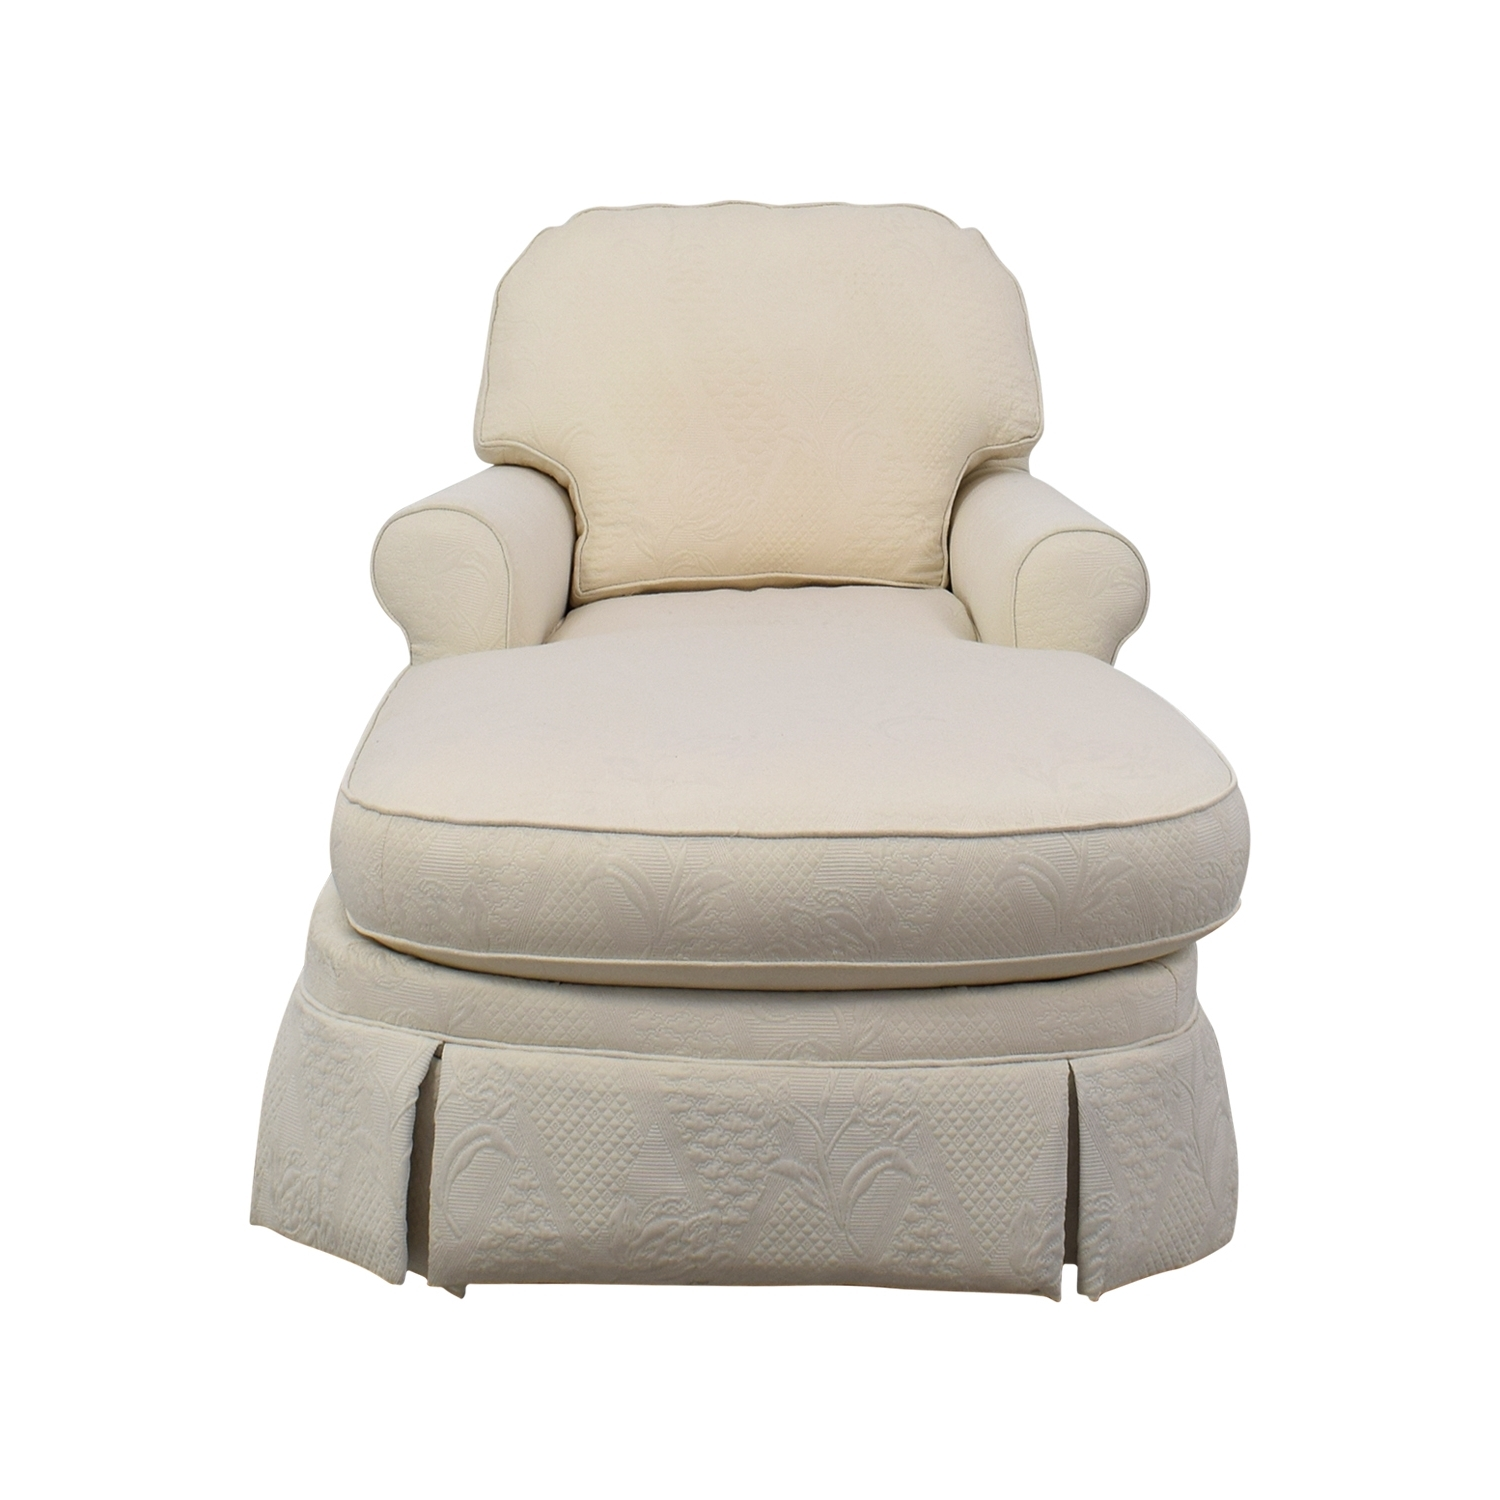 [%85% Off – Ethan Allen Ethan Allen Victoria White Chaise Lounge / Sofas Within Popular White Chaises|White Chaises Throughout Most Recently Released 85% Off – Ethan Allen Ethan Allen Victoria White Chaise Lounge / Sofas|Well Known White Chaises With Regard To 85% Off – Ethan Allen Ethan Allen Victoria White Chaise Lounge / Sofas|Most Recent 85% Off – Ethan Allen Ethan Allen Victoria White Chaise Lounge / Sofas Intended For White Chaises%] (View 8 of 15)